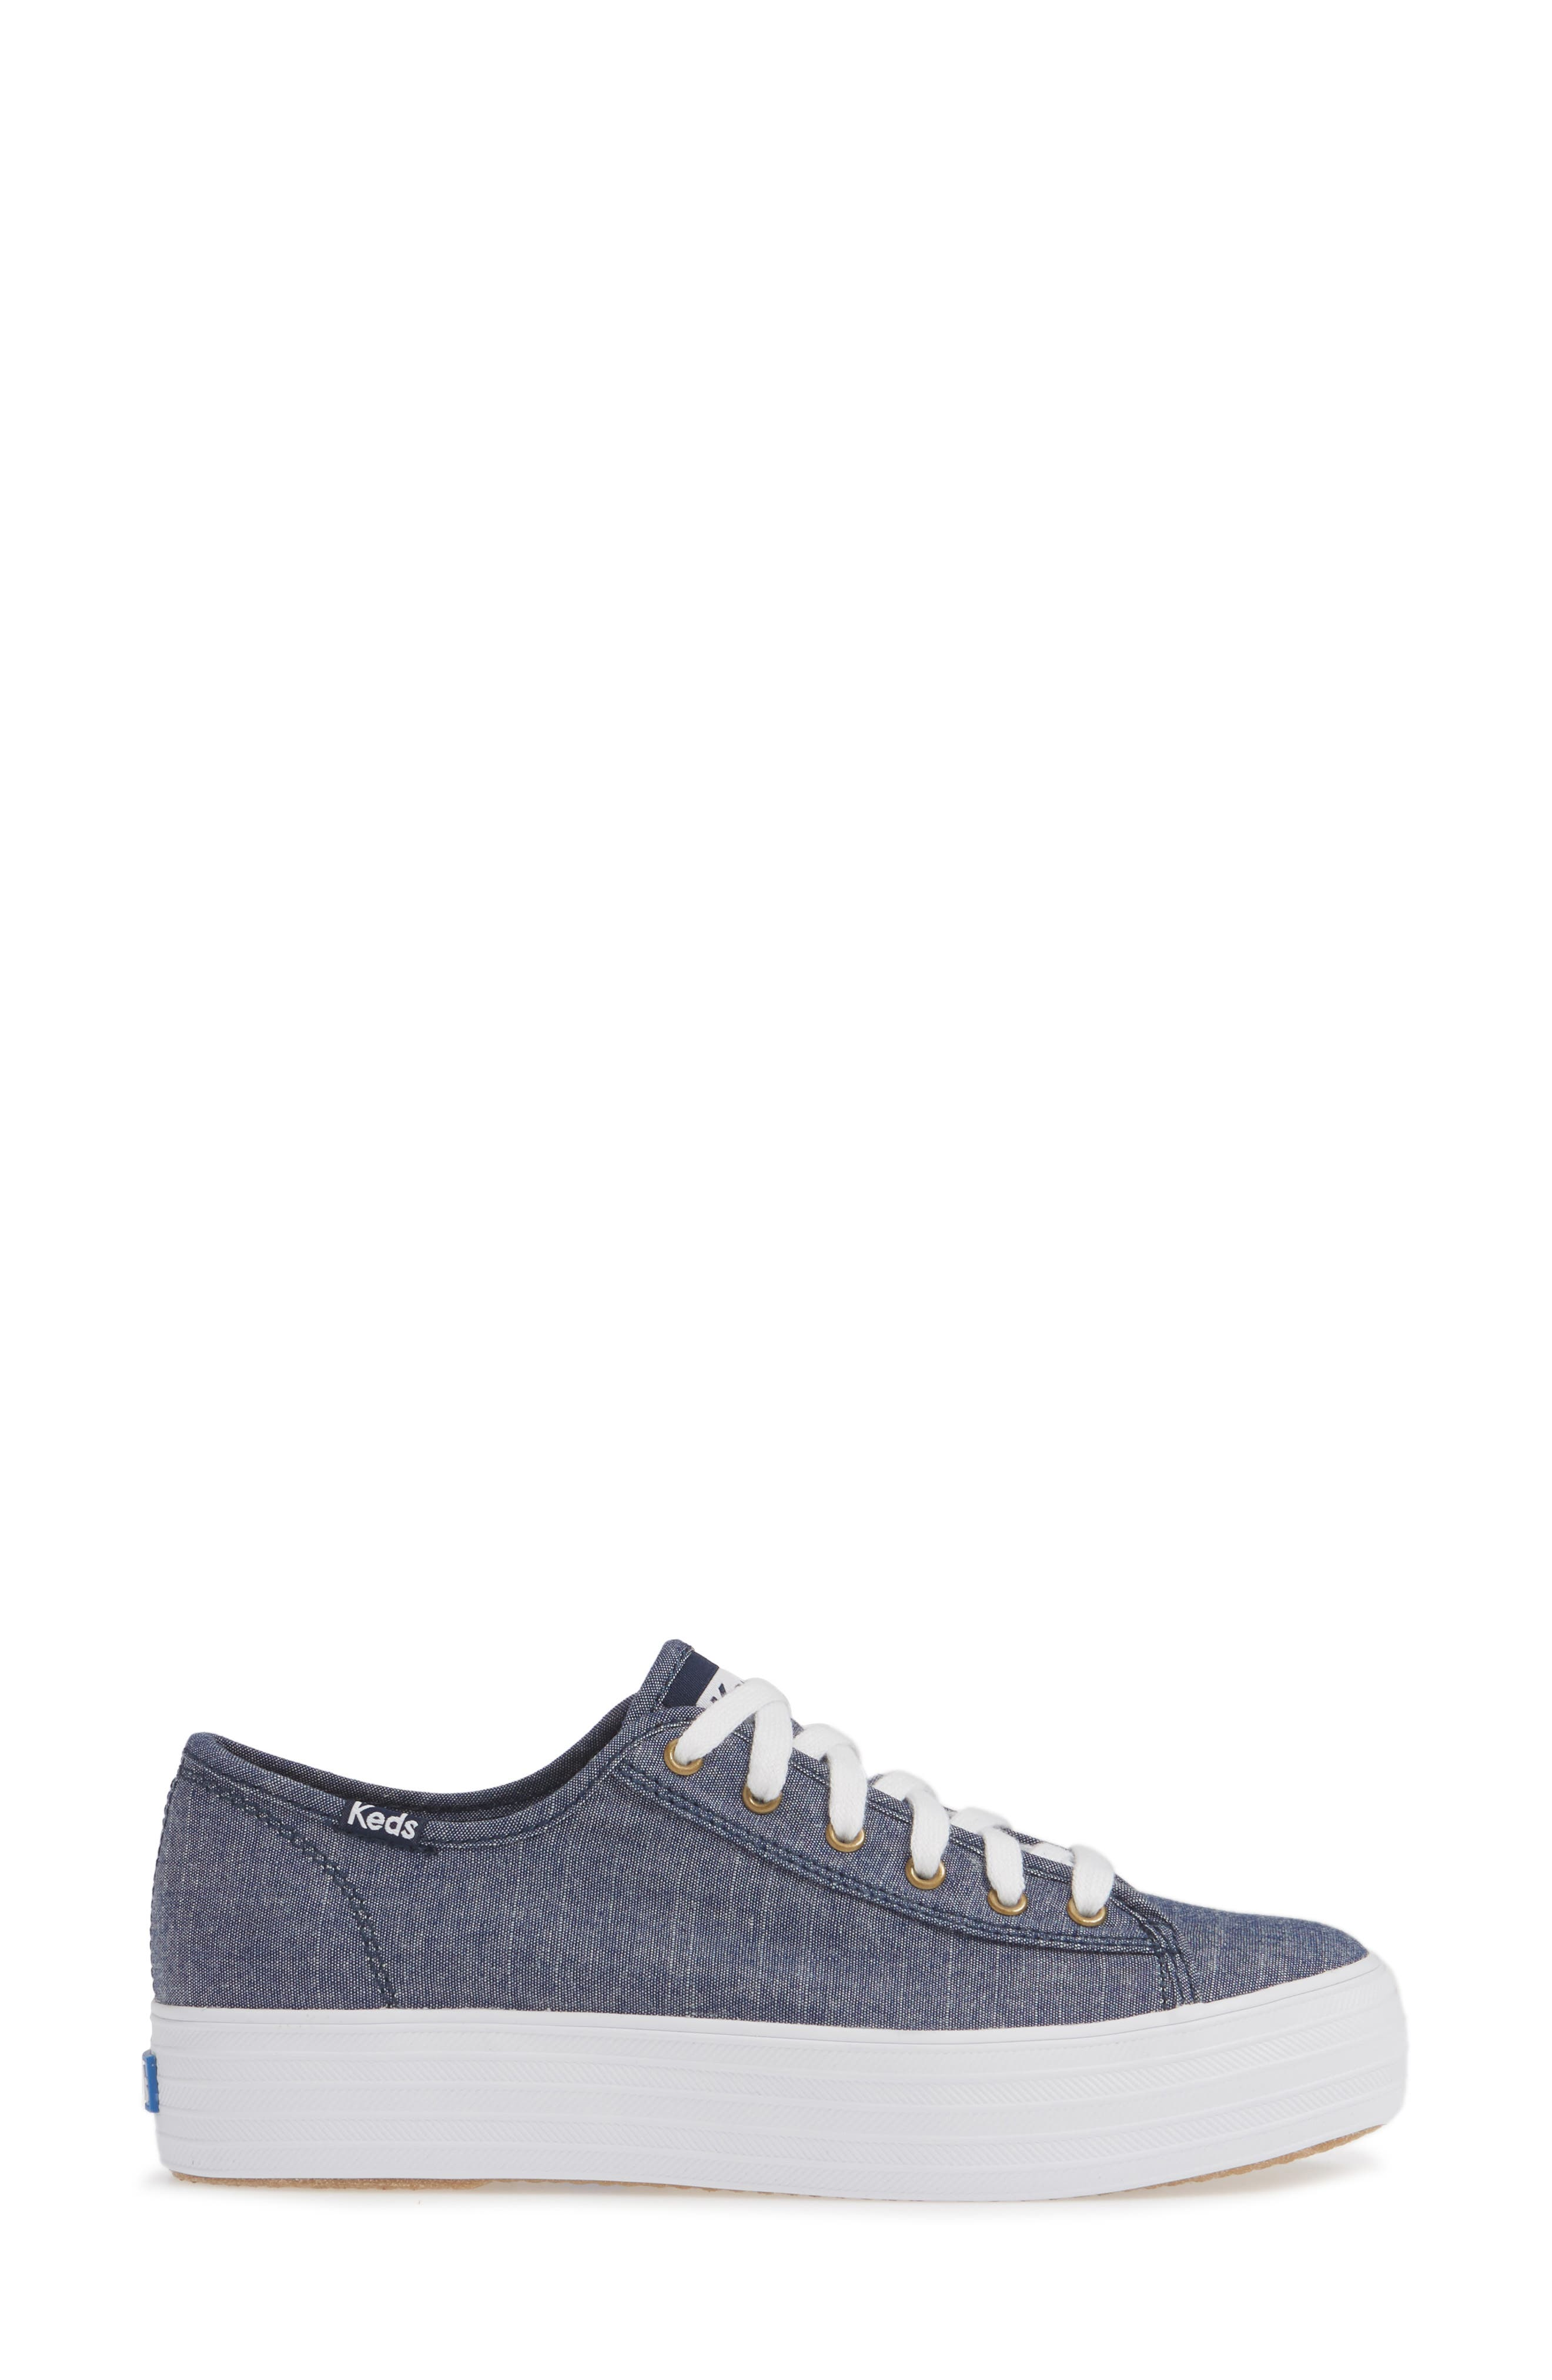 KEDS<SUP>®</SUP>, Triple Kick Platform Chambray Sneaker, Alternate thumbnail 3, color, BLUE